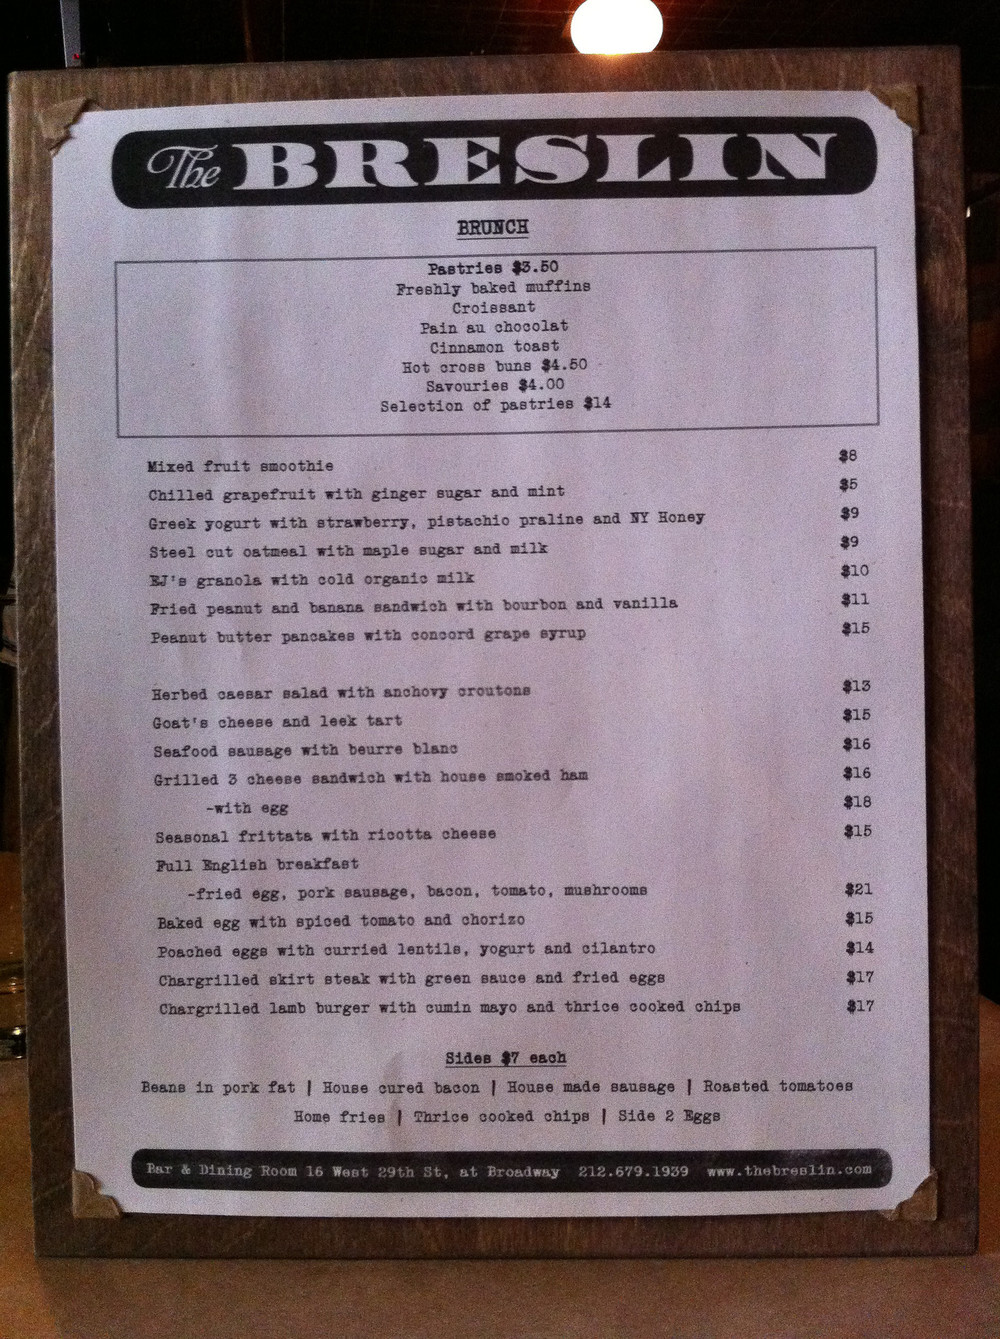 The Breslin - Weekend Brunch Menu